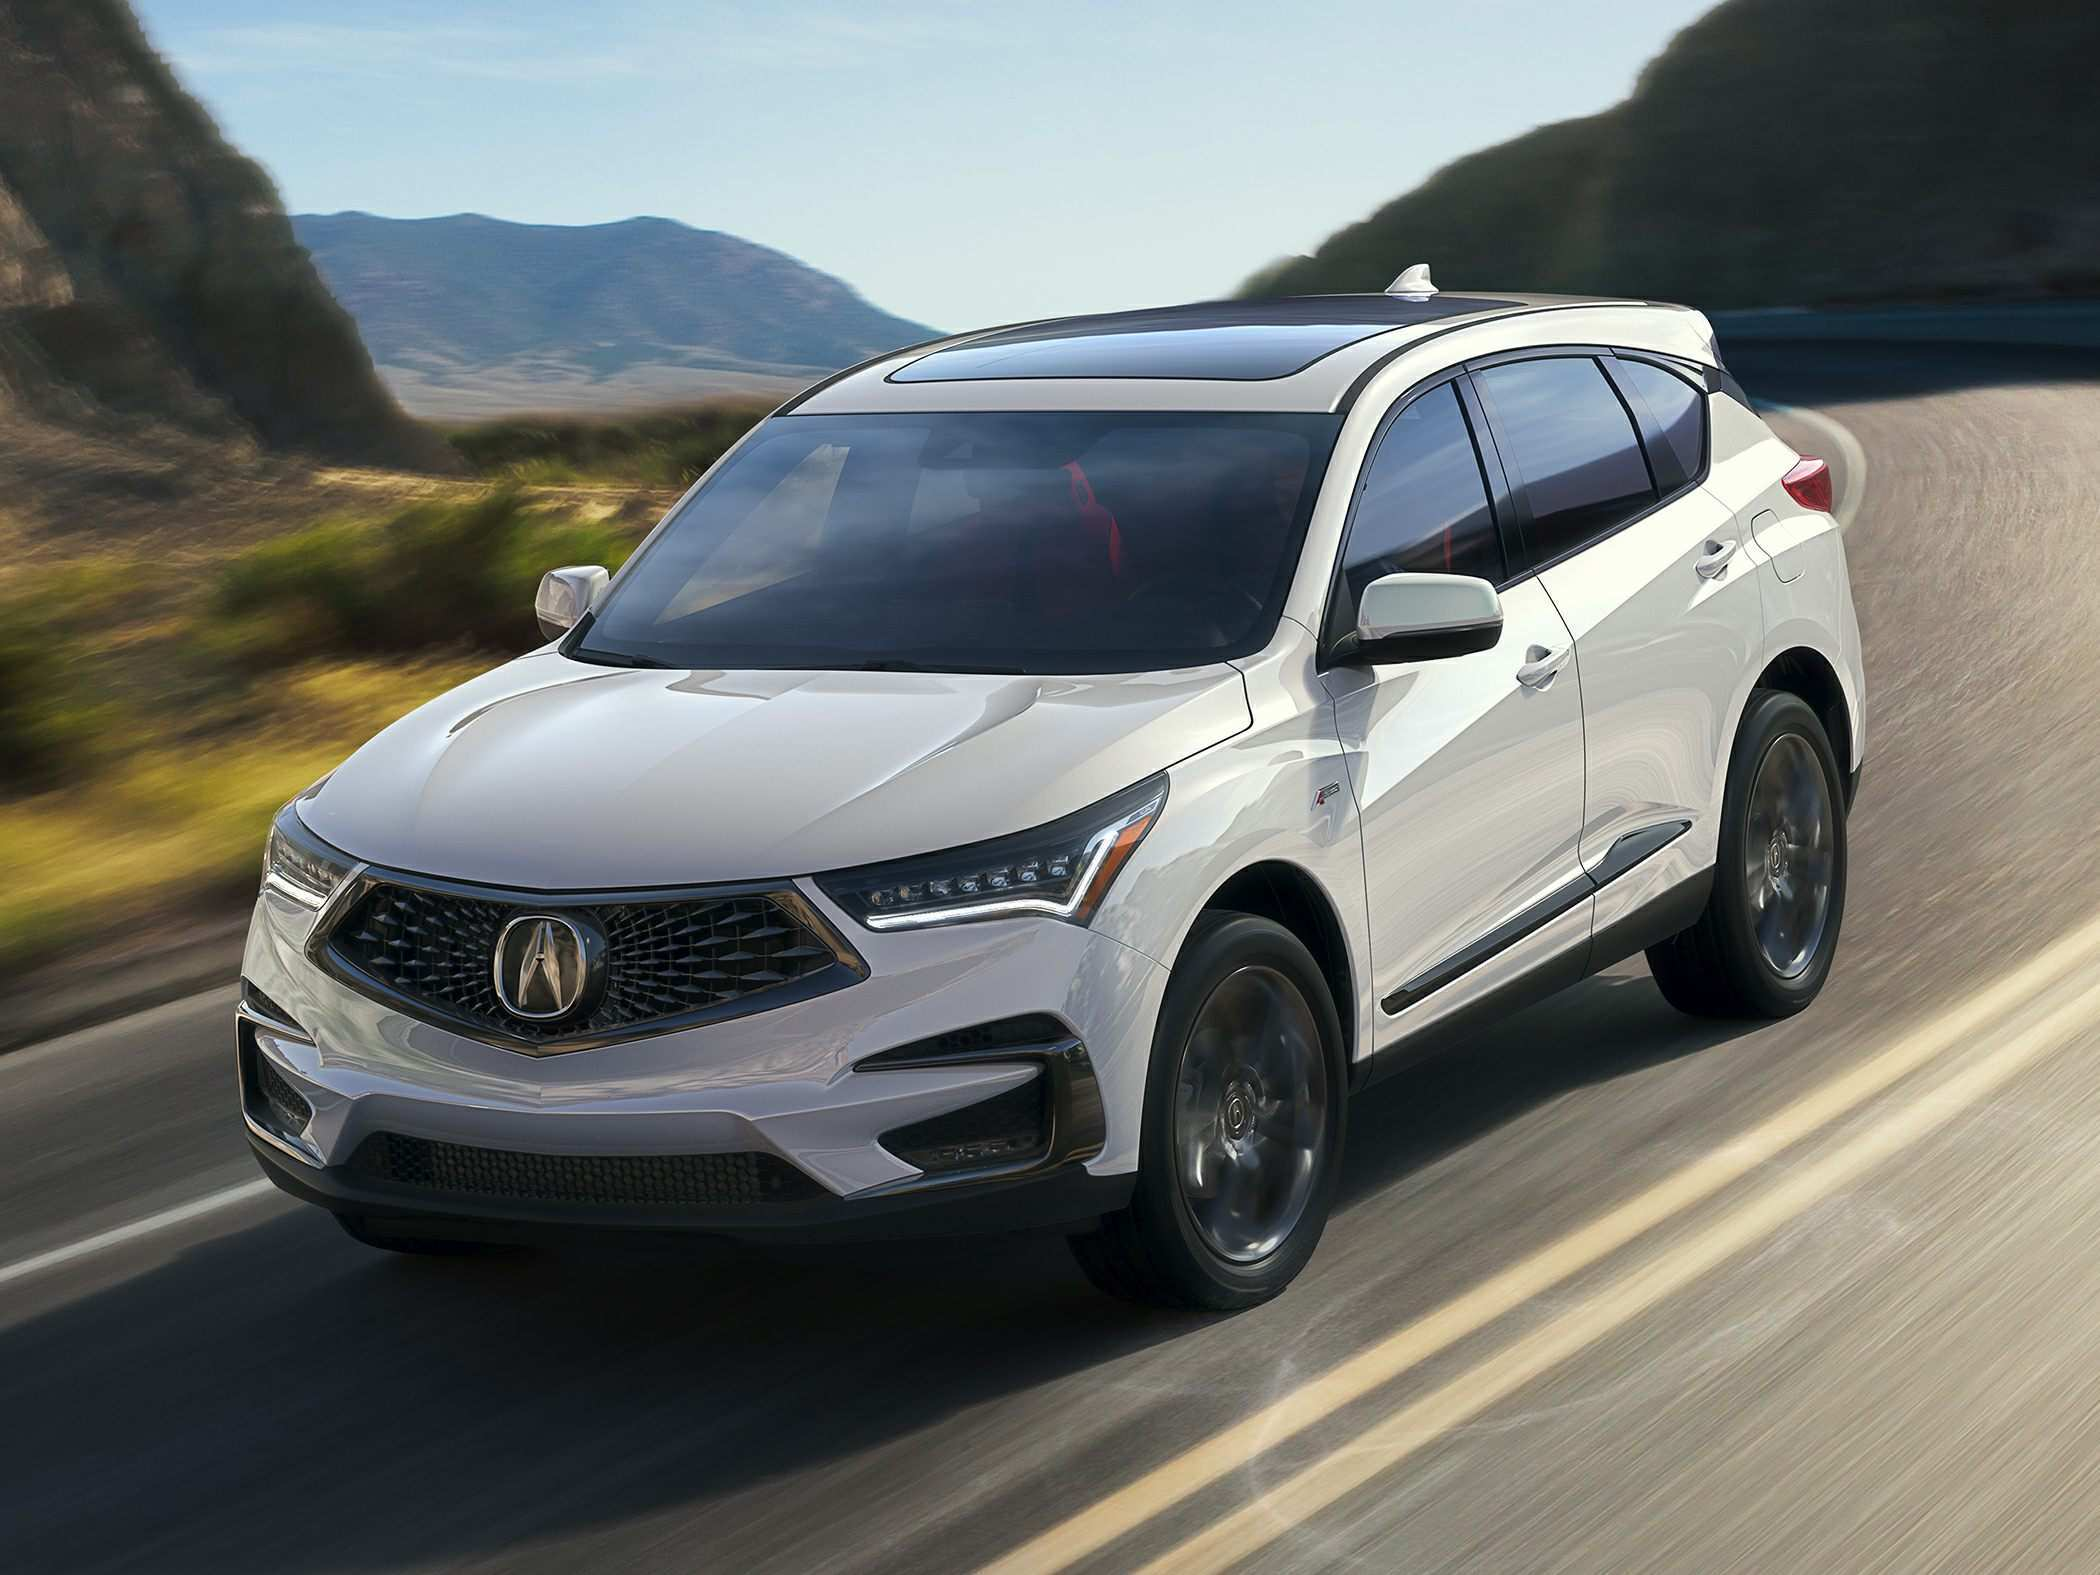 19 A 2020 Acura RDX Picture